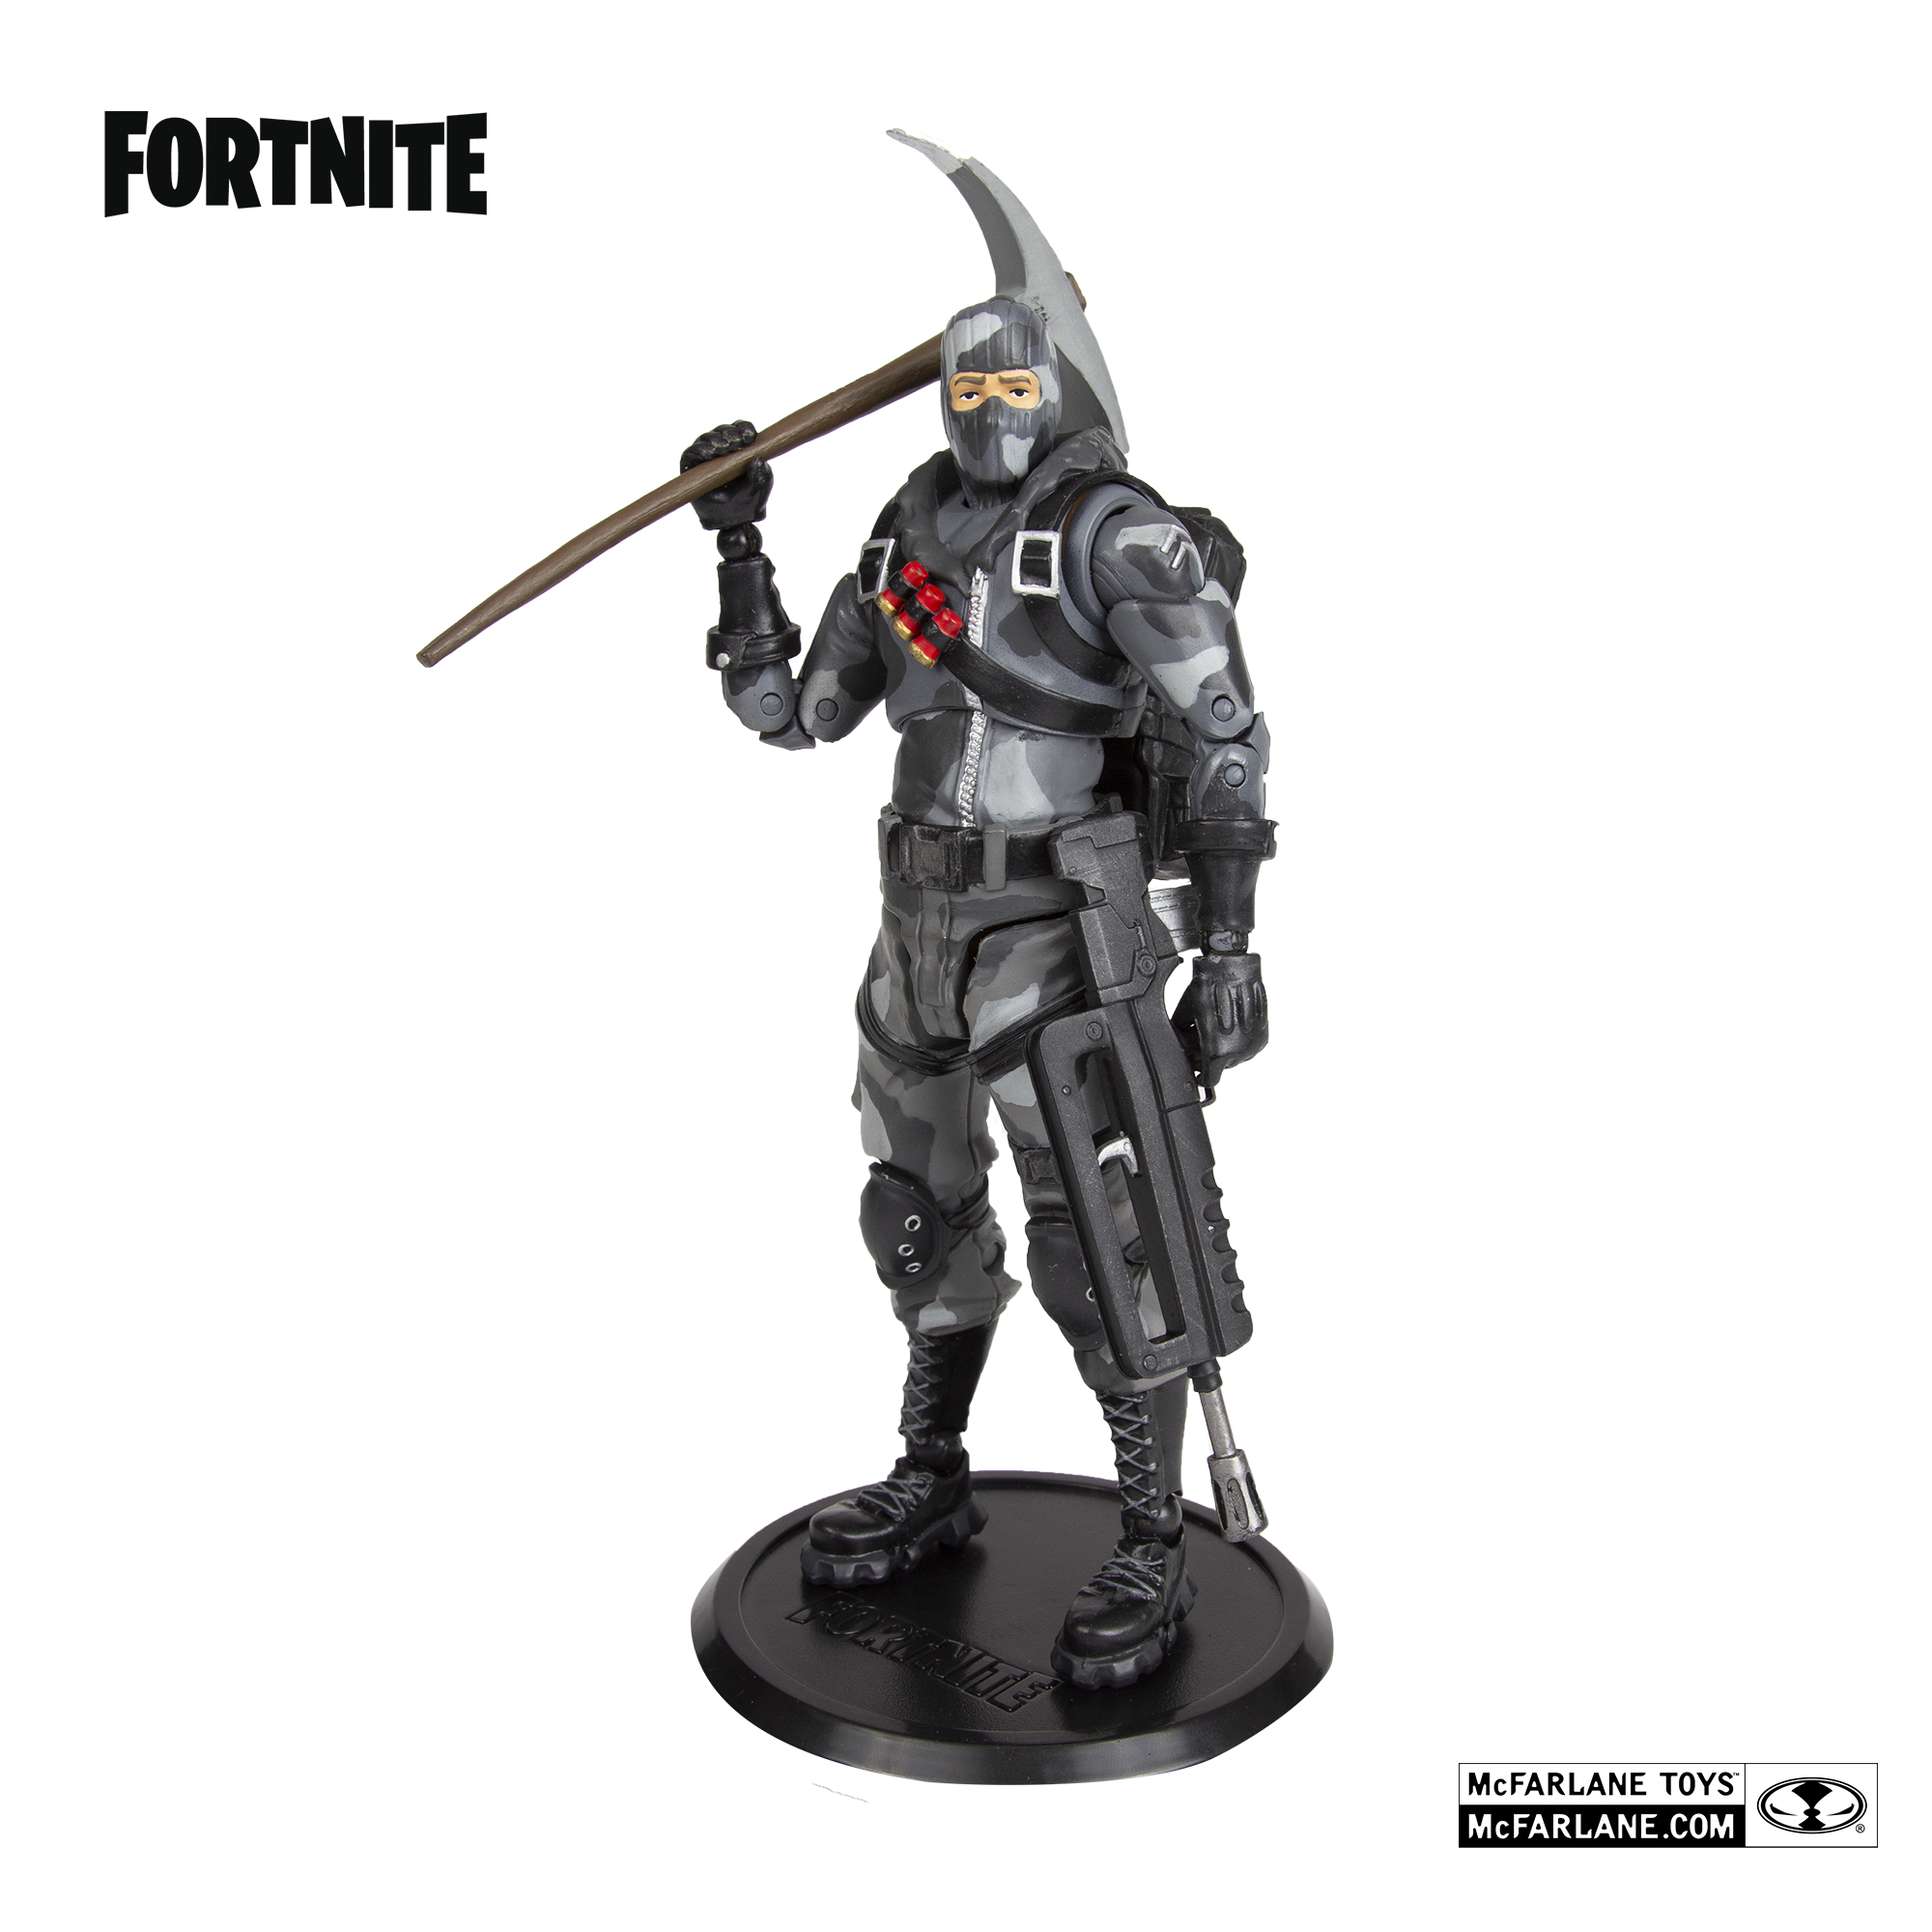 Mcfarlane Fortnite Figure Reveals Page 5 The Fwoosh Forums